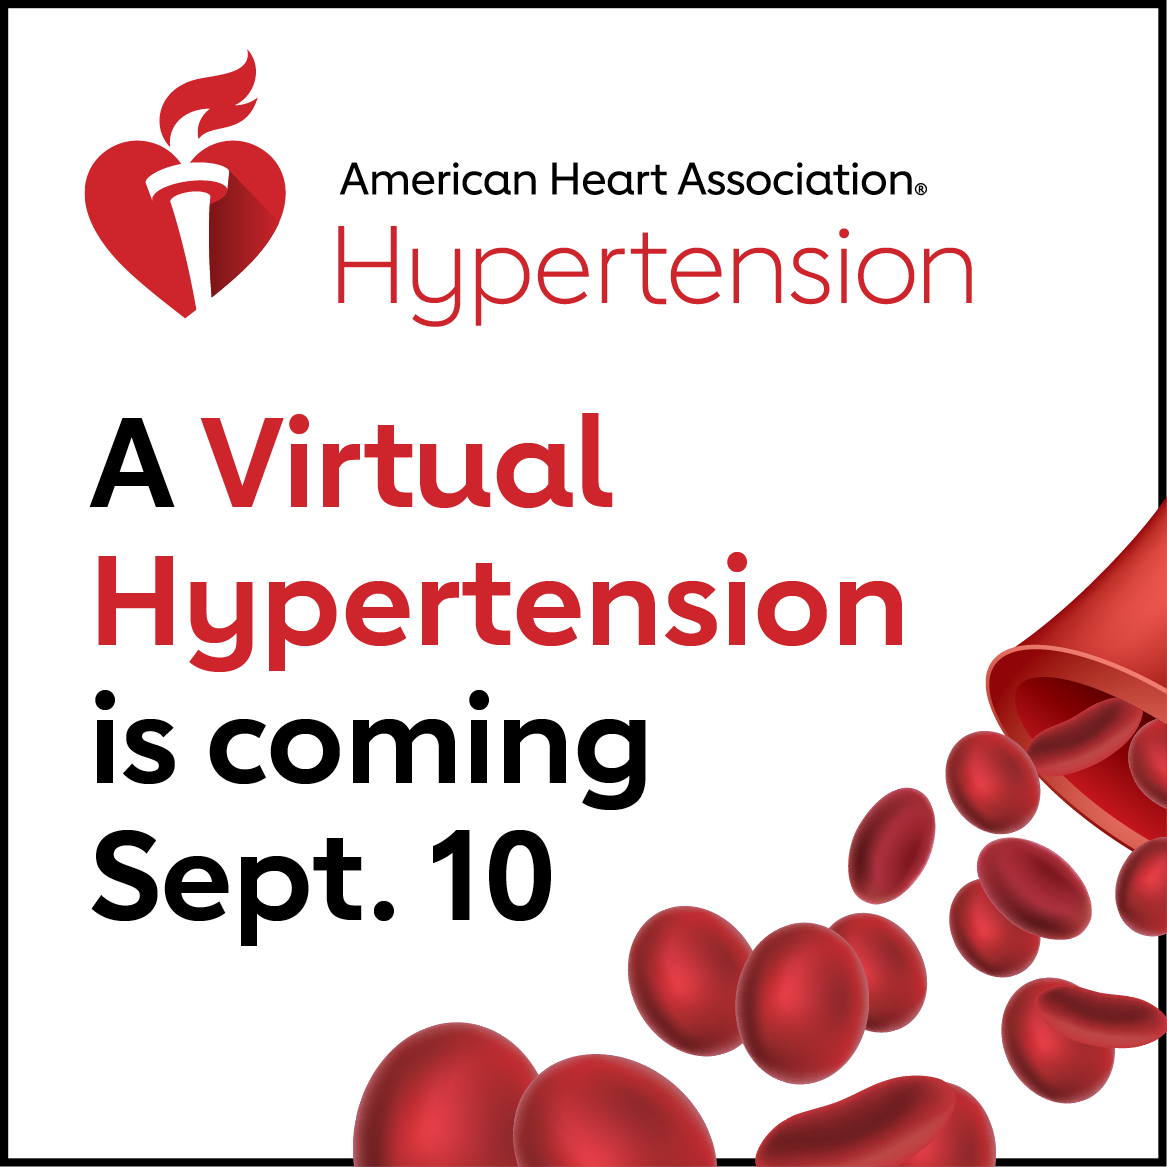 A Virtual Hypertension is coming Sept. 10